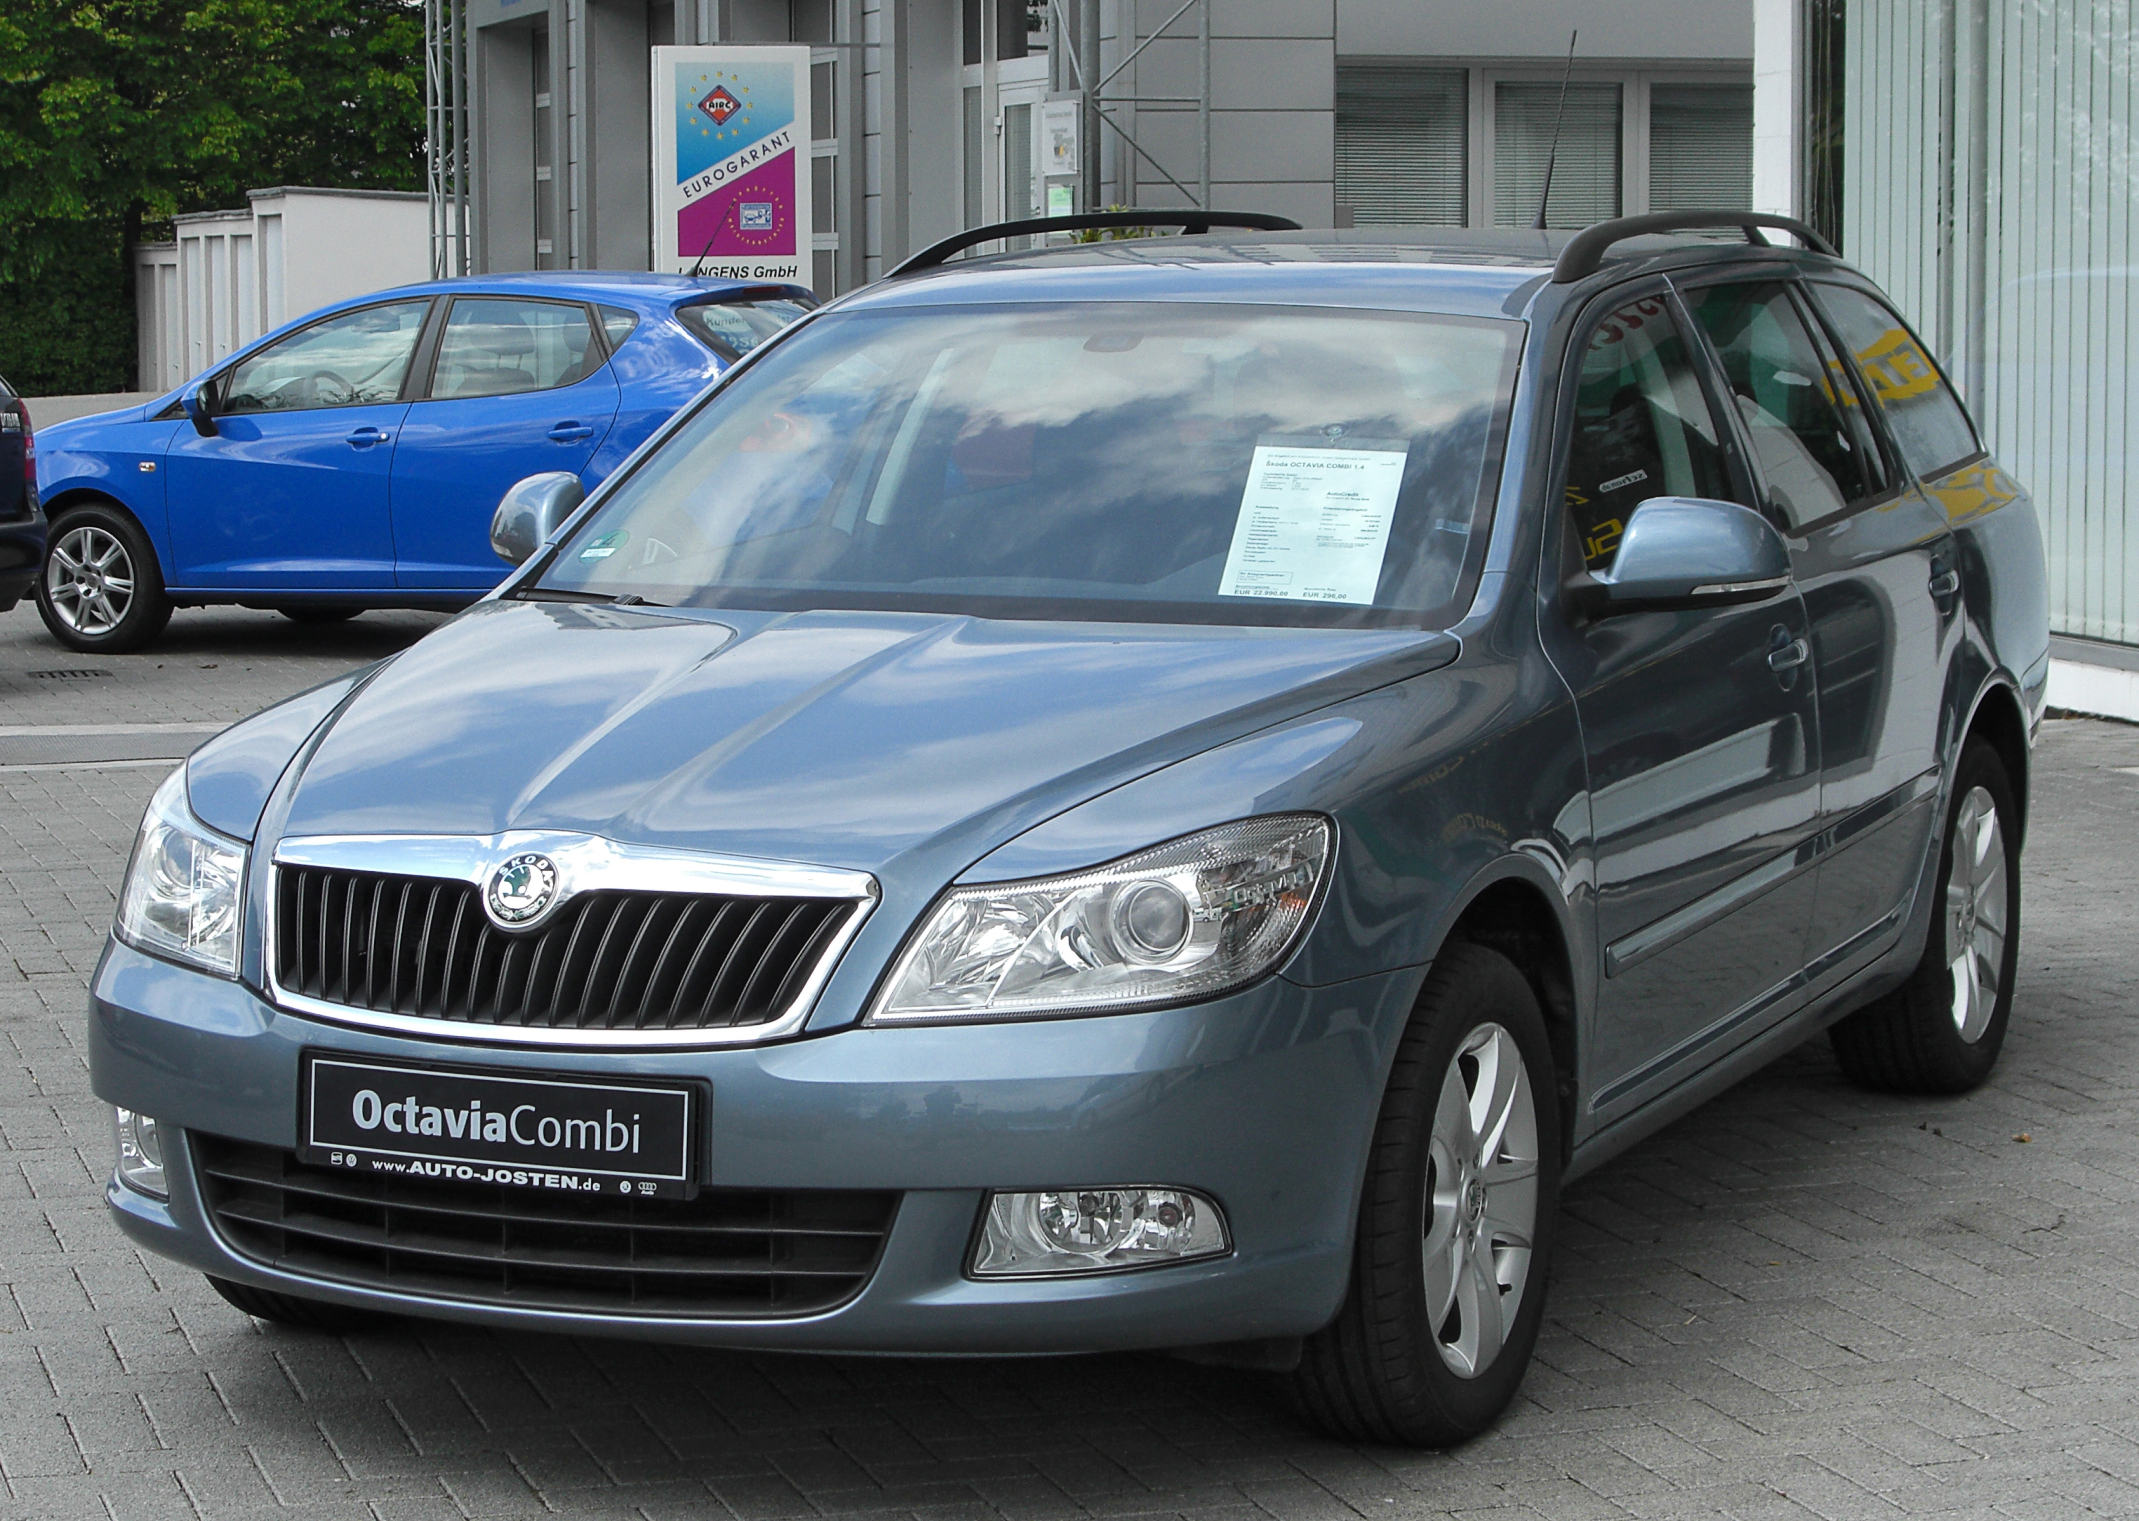 file skoda octavia ii combi 1 4 facelift front wikimedia commons. Black Bedroom Furniture Sets. Home Design Ideas